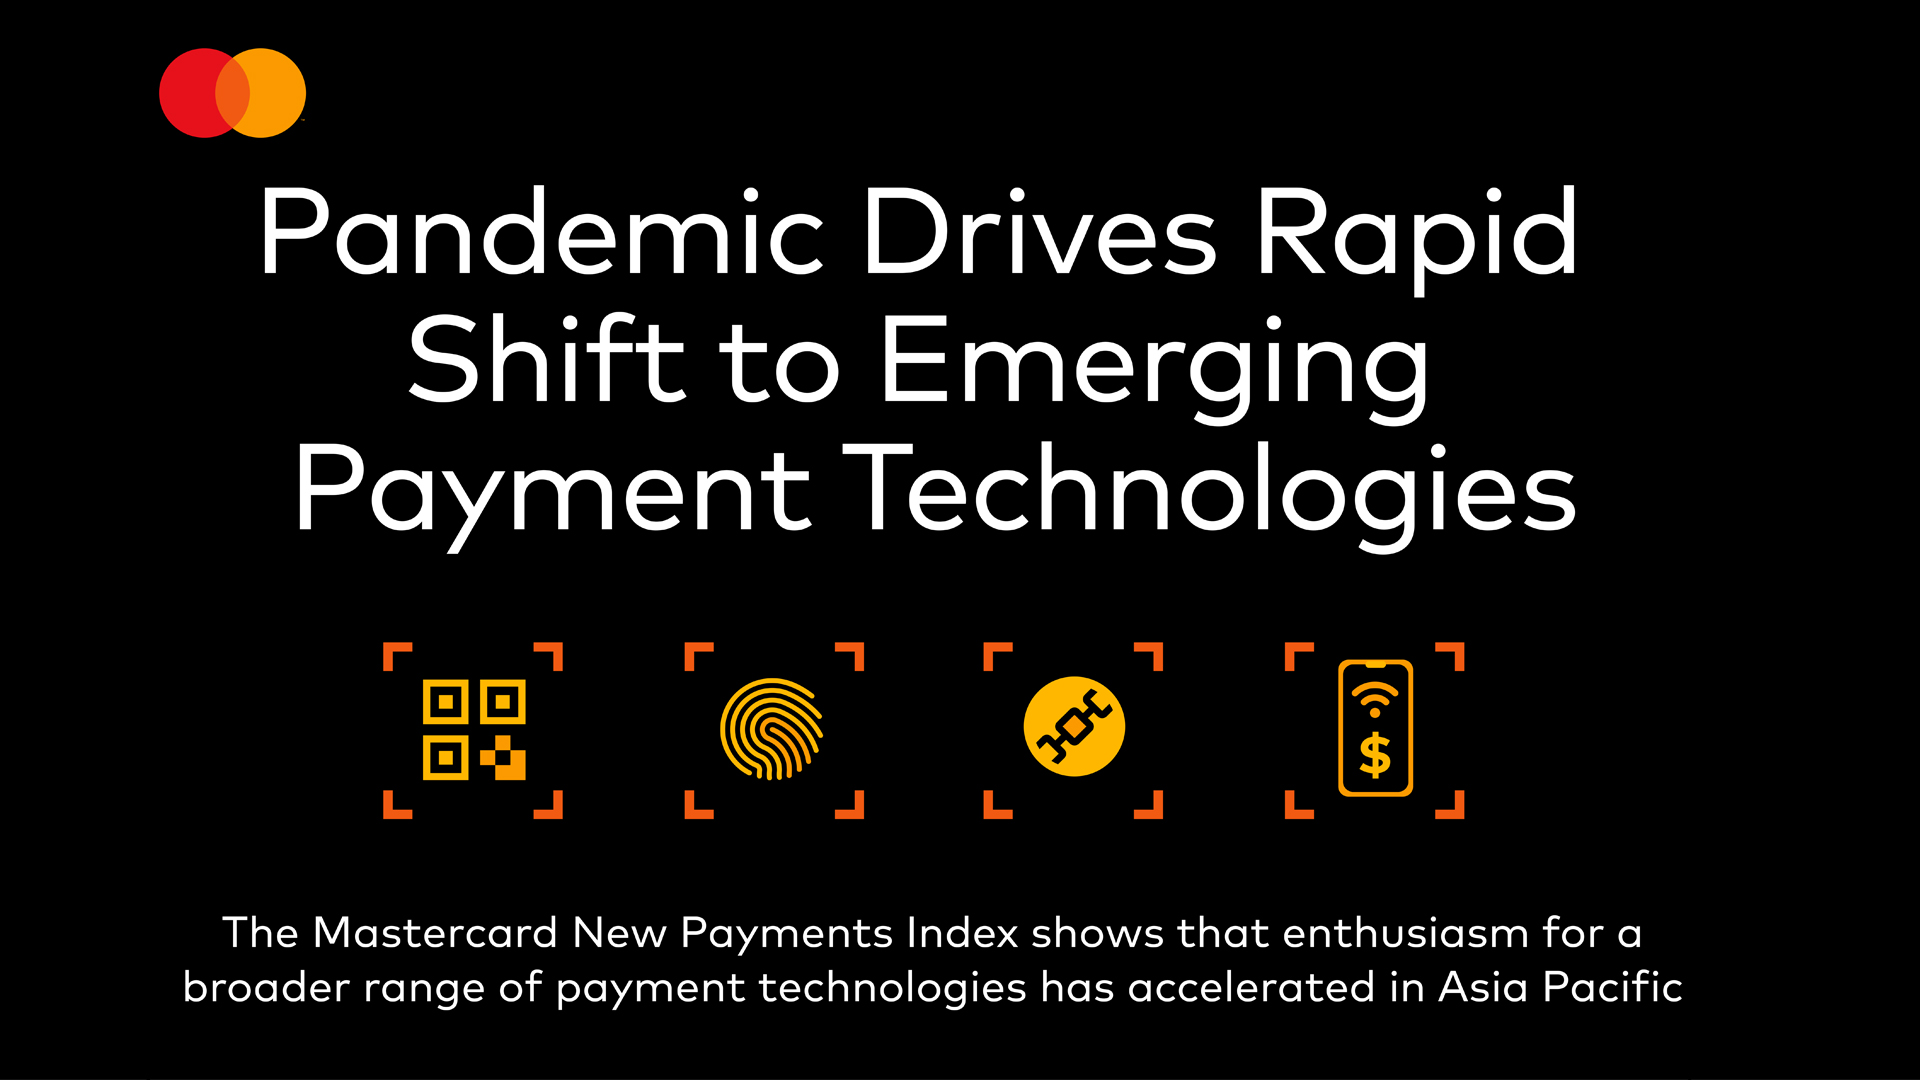 Pandemic alters spending and payment habits in APAC